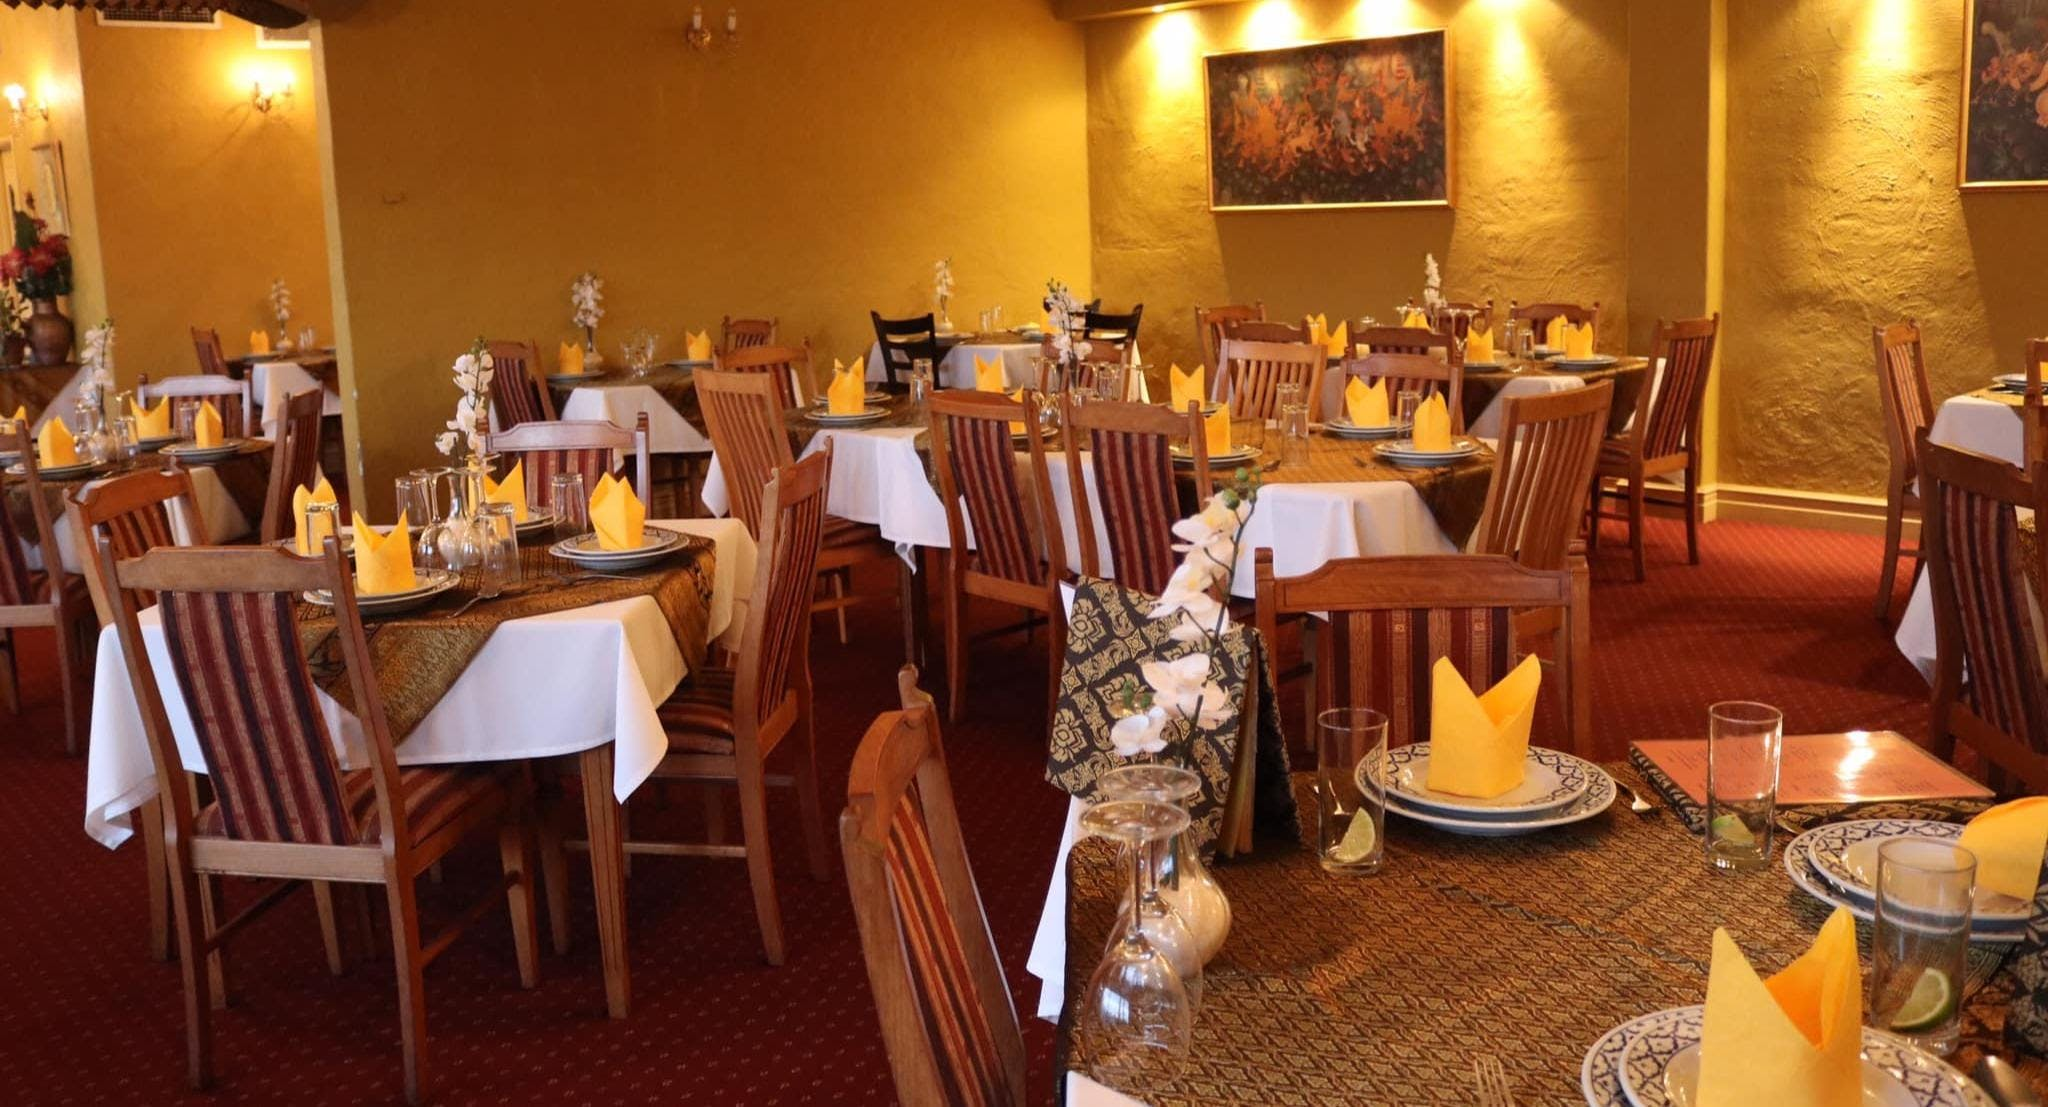 Photo of restaurant Thai Orchid - Mt Lawley in Mount Lawley, Perth